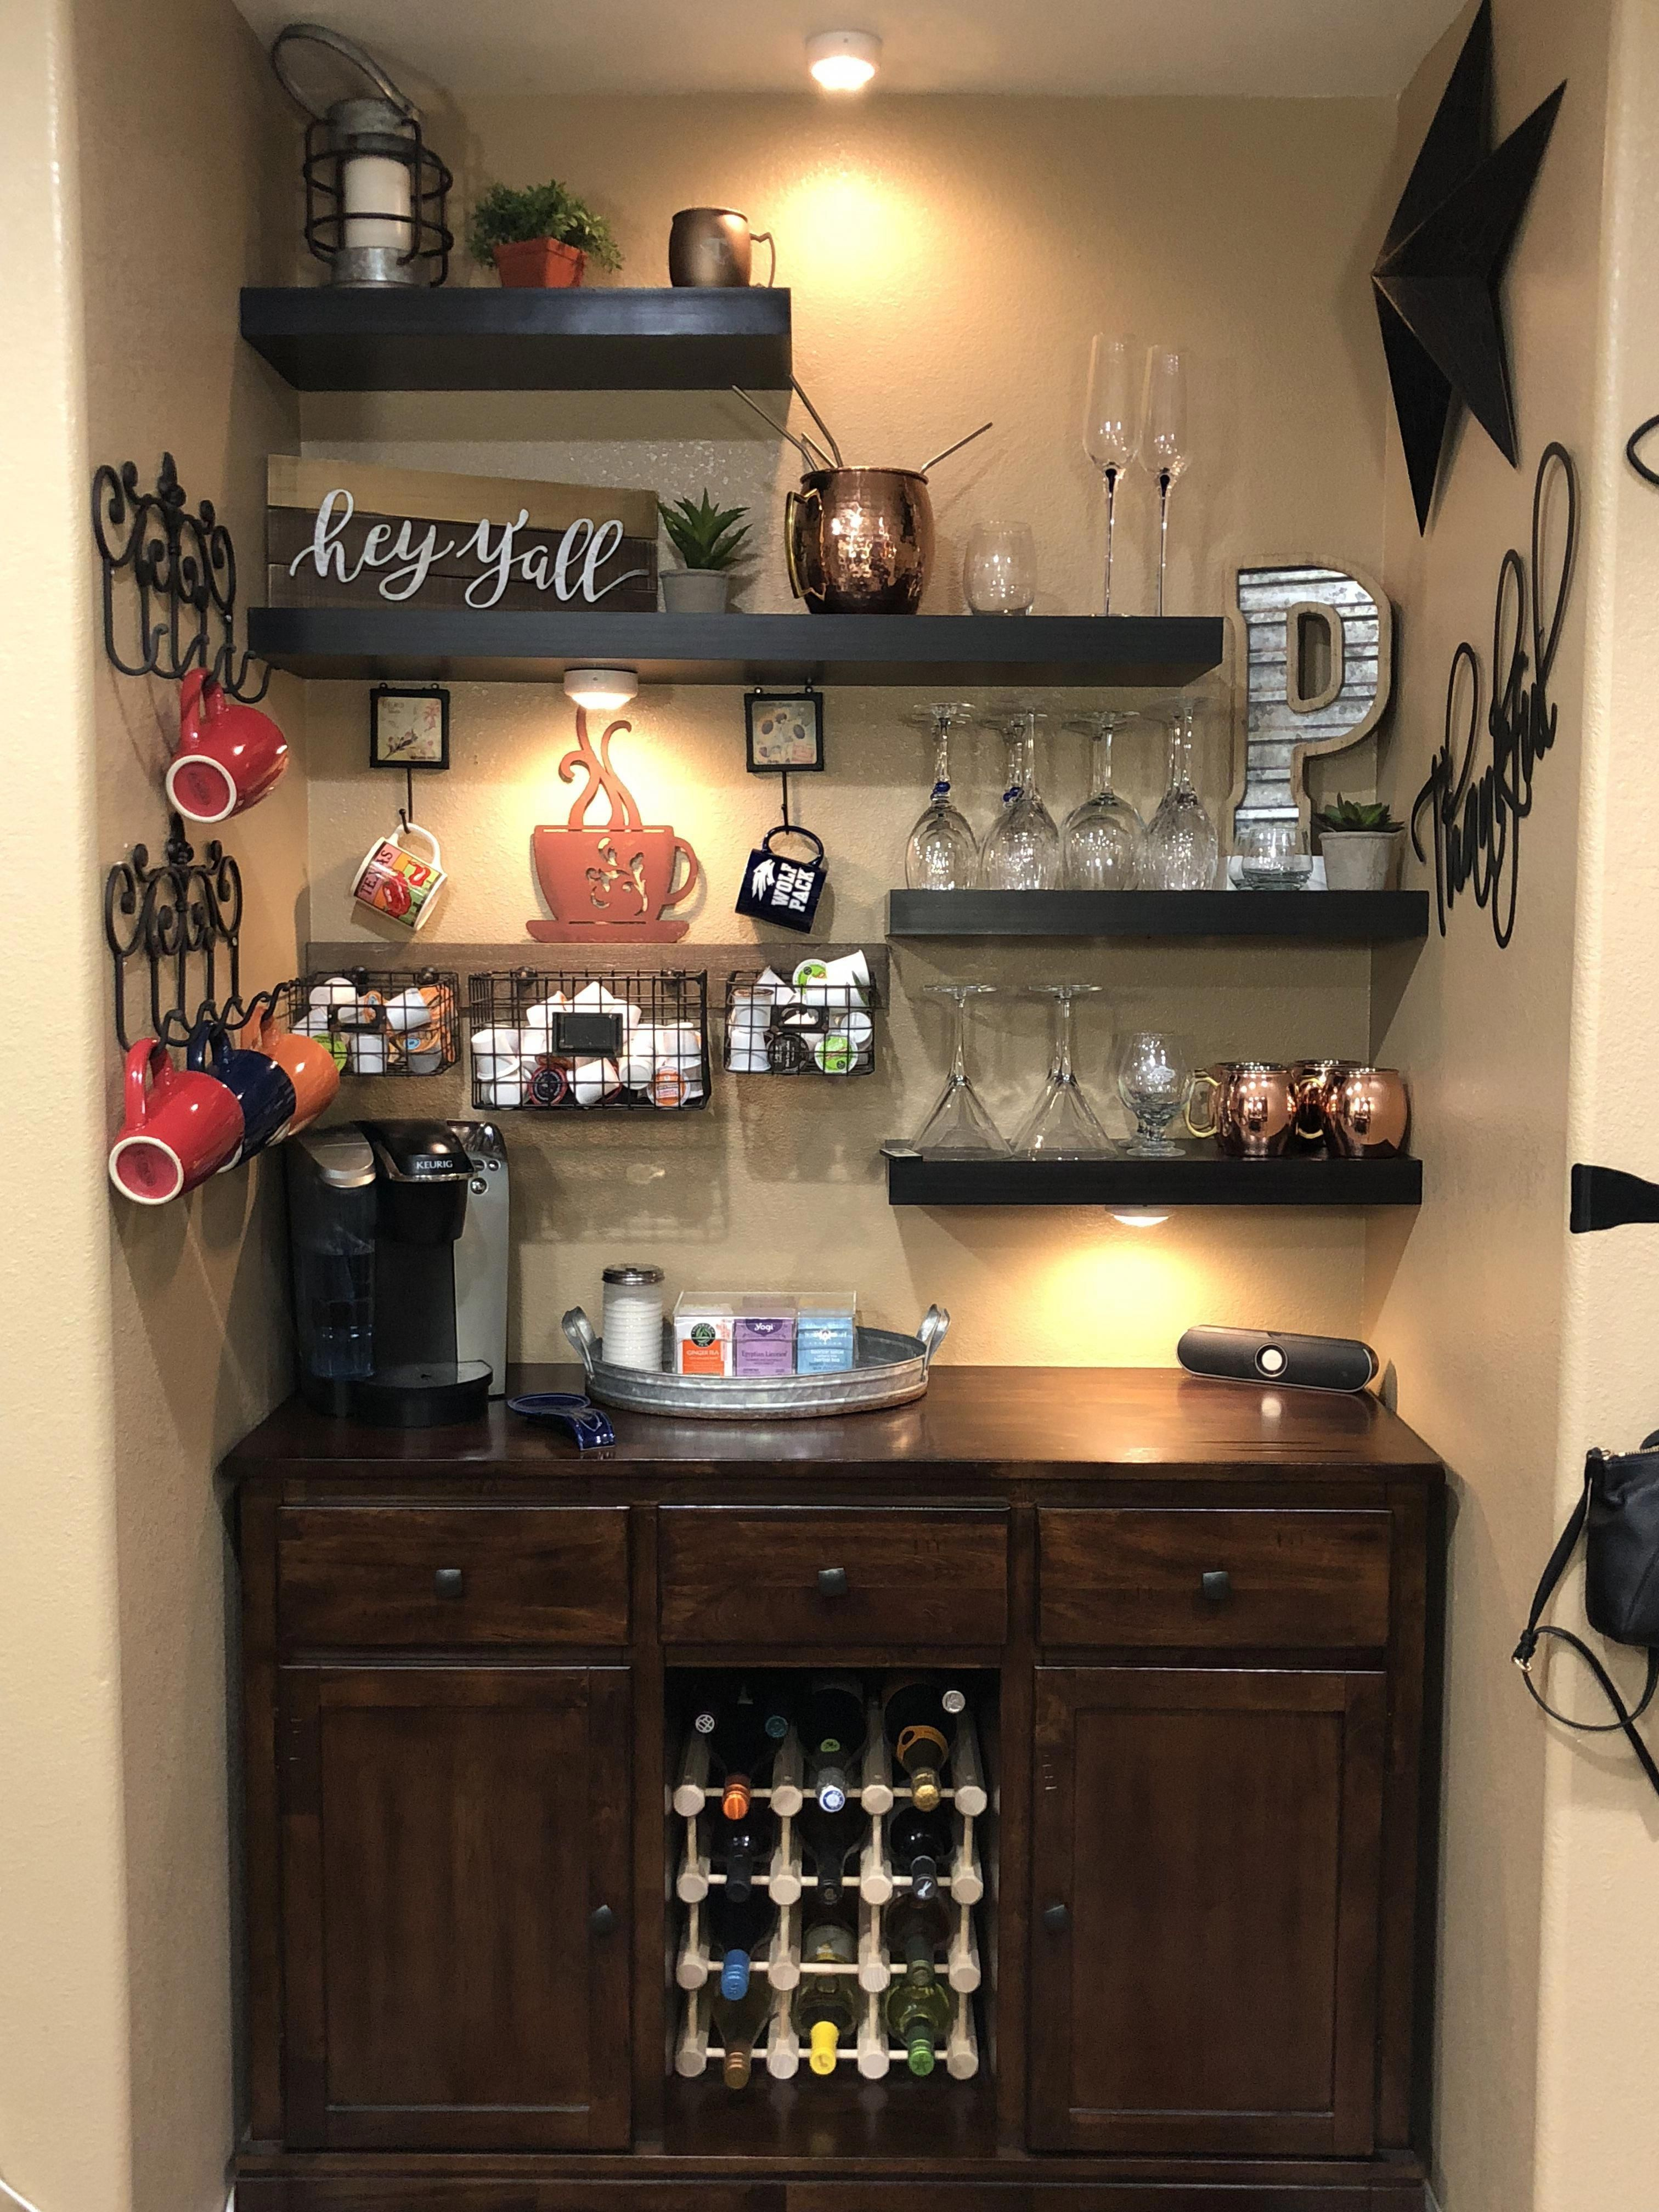 Created my coffeewine bar So pleased how it turned out